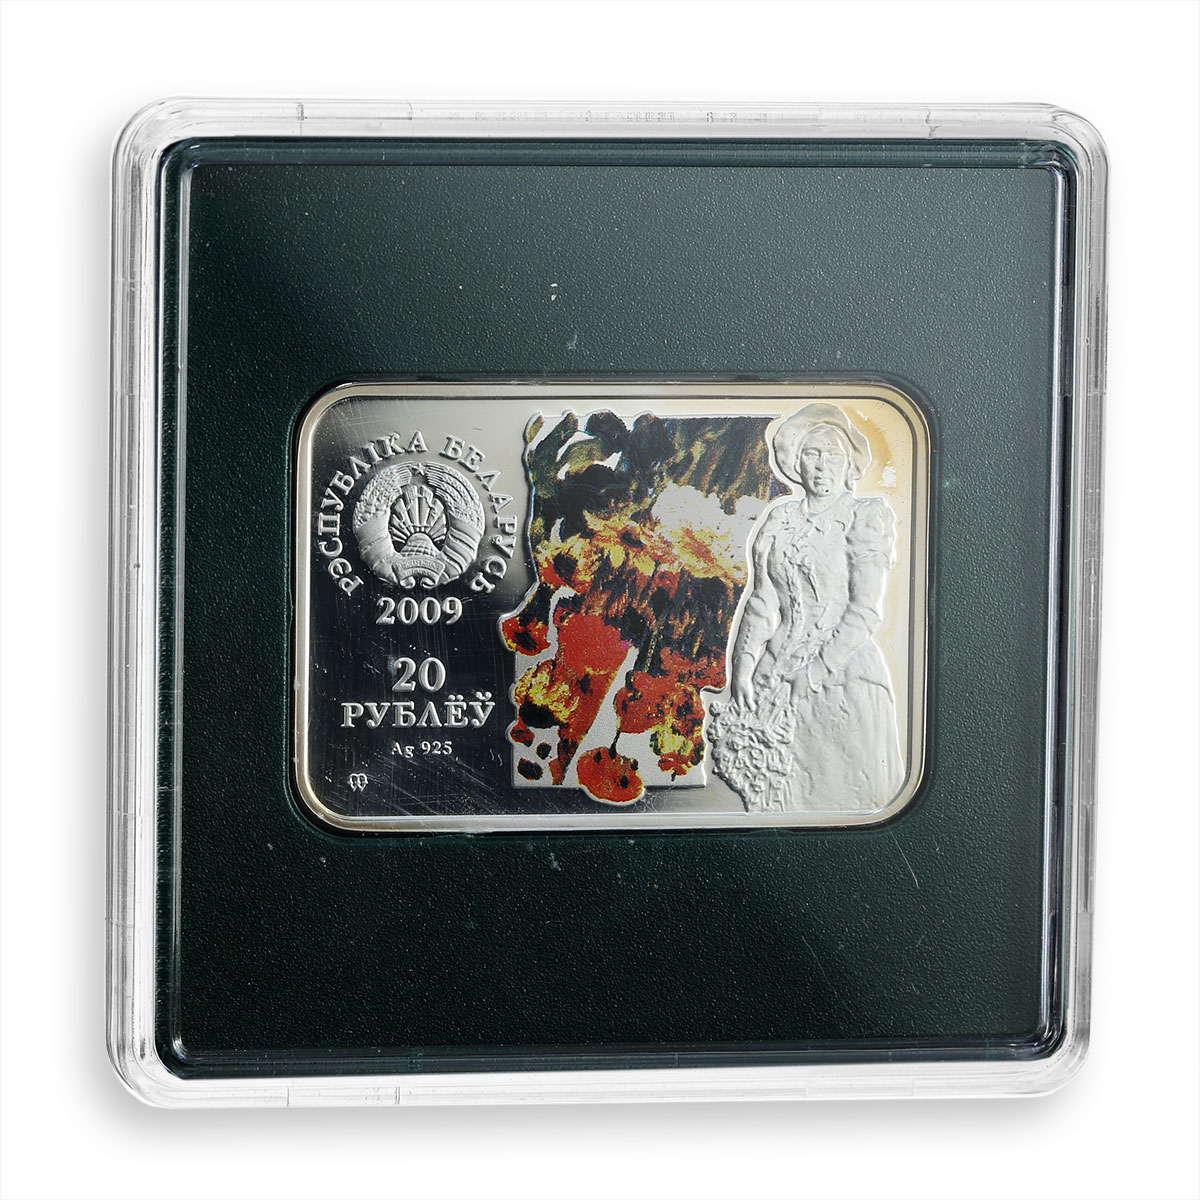 Belarus 20 rubles, Ilya Repin, Painters of the World, art, silver, coin 2009